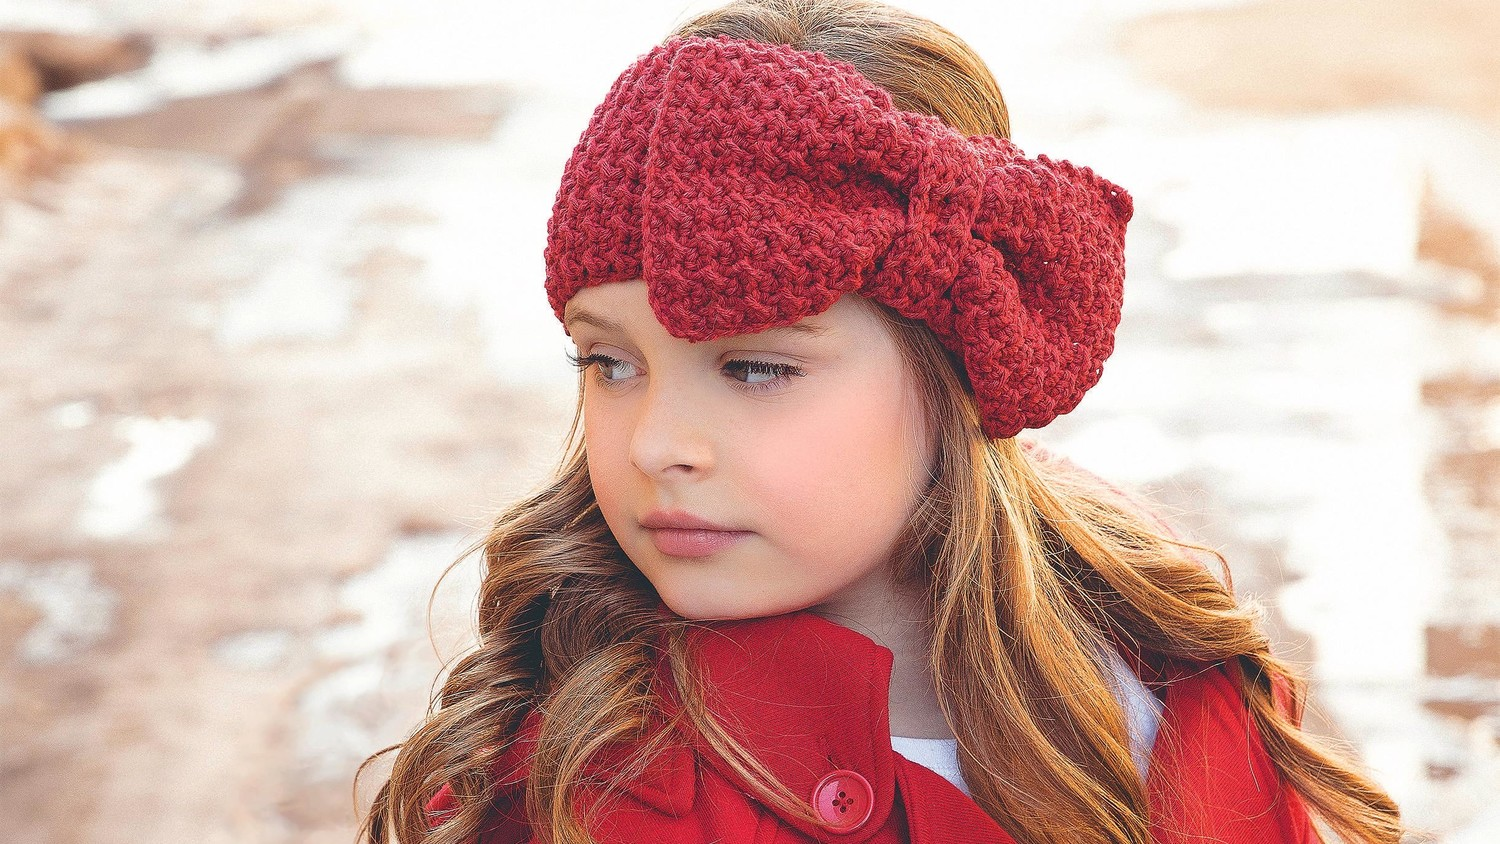 Crocheted Headband with Floppy Bow